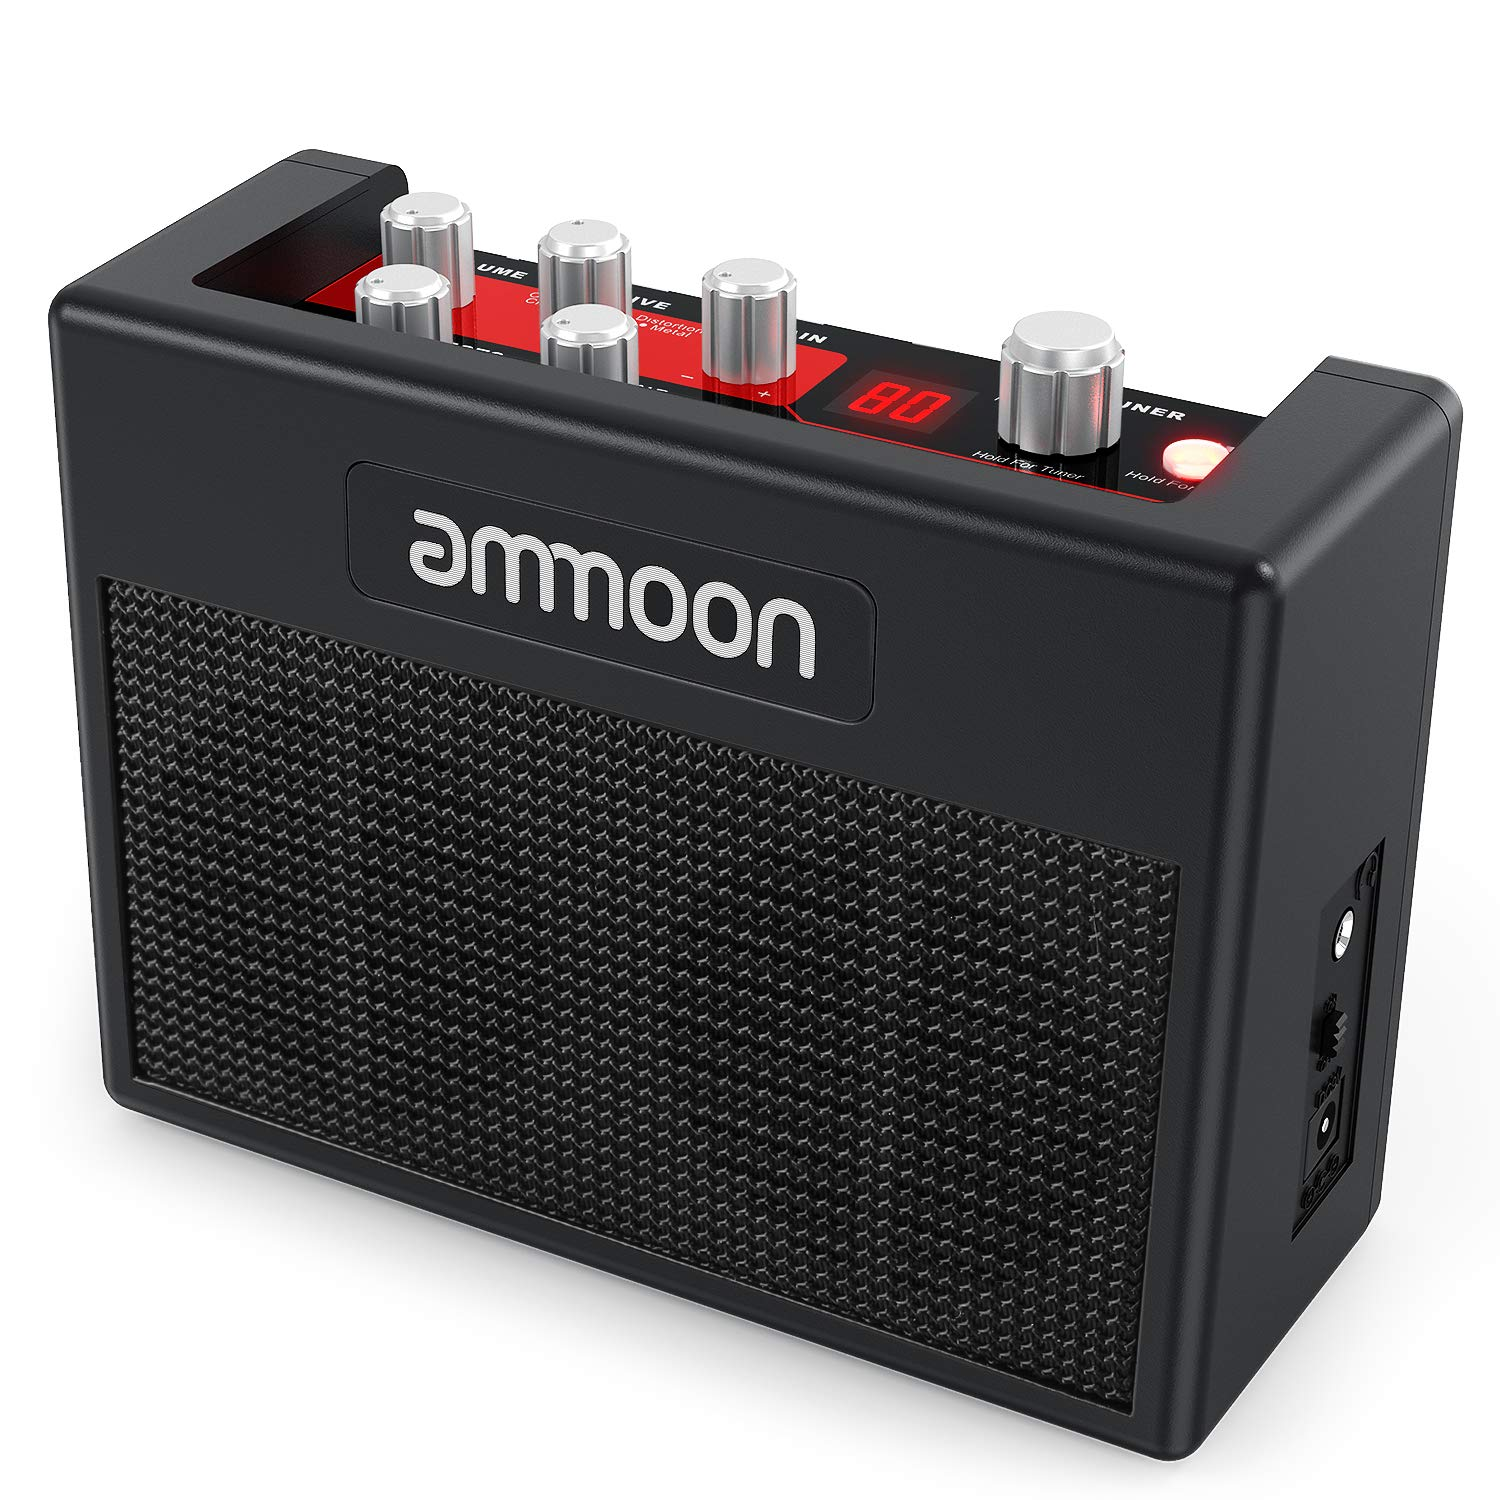 ammoon Guitar Amp POCKAMP Portable Guitar Amplifier Amp Built-in Multi-effects 80 Drum Rhythms Support Tuner Tap Tempo Functions with Aux Input Headphone Output, Power adapter included I3697